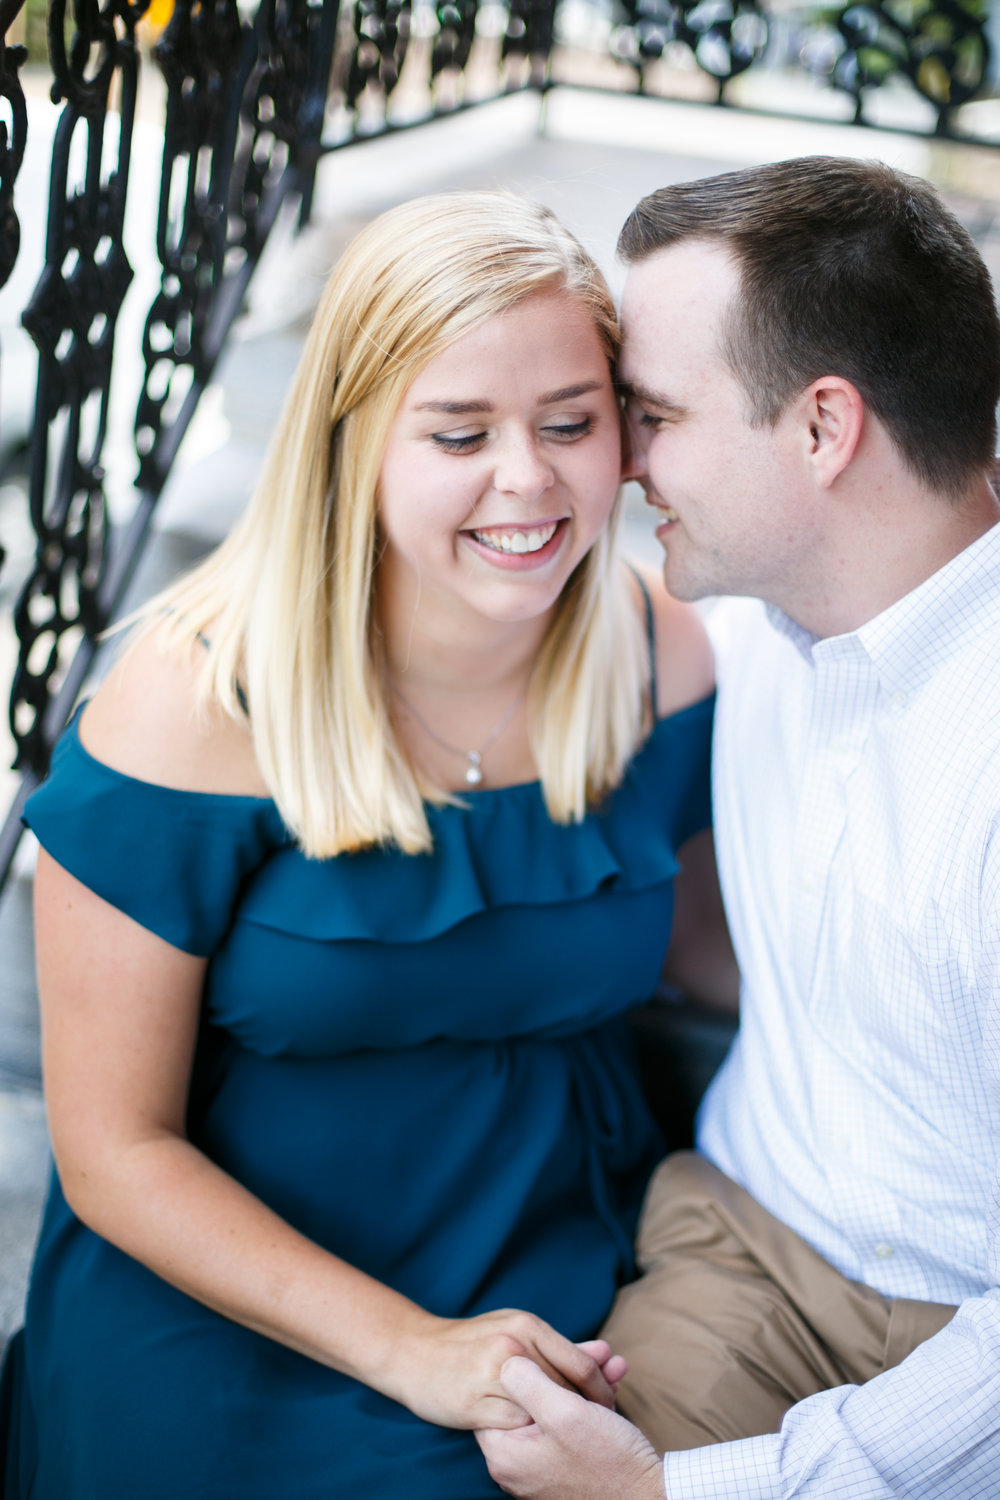 Manayunk Philadelphia Main Street Engagement Session Manayunk Philadelphia Main Street Engagement Session 3